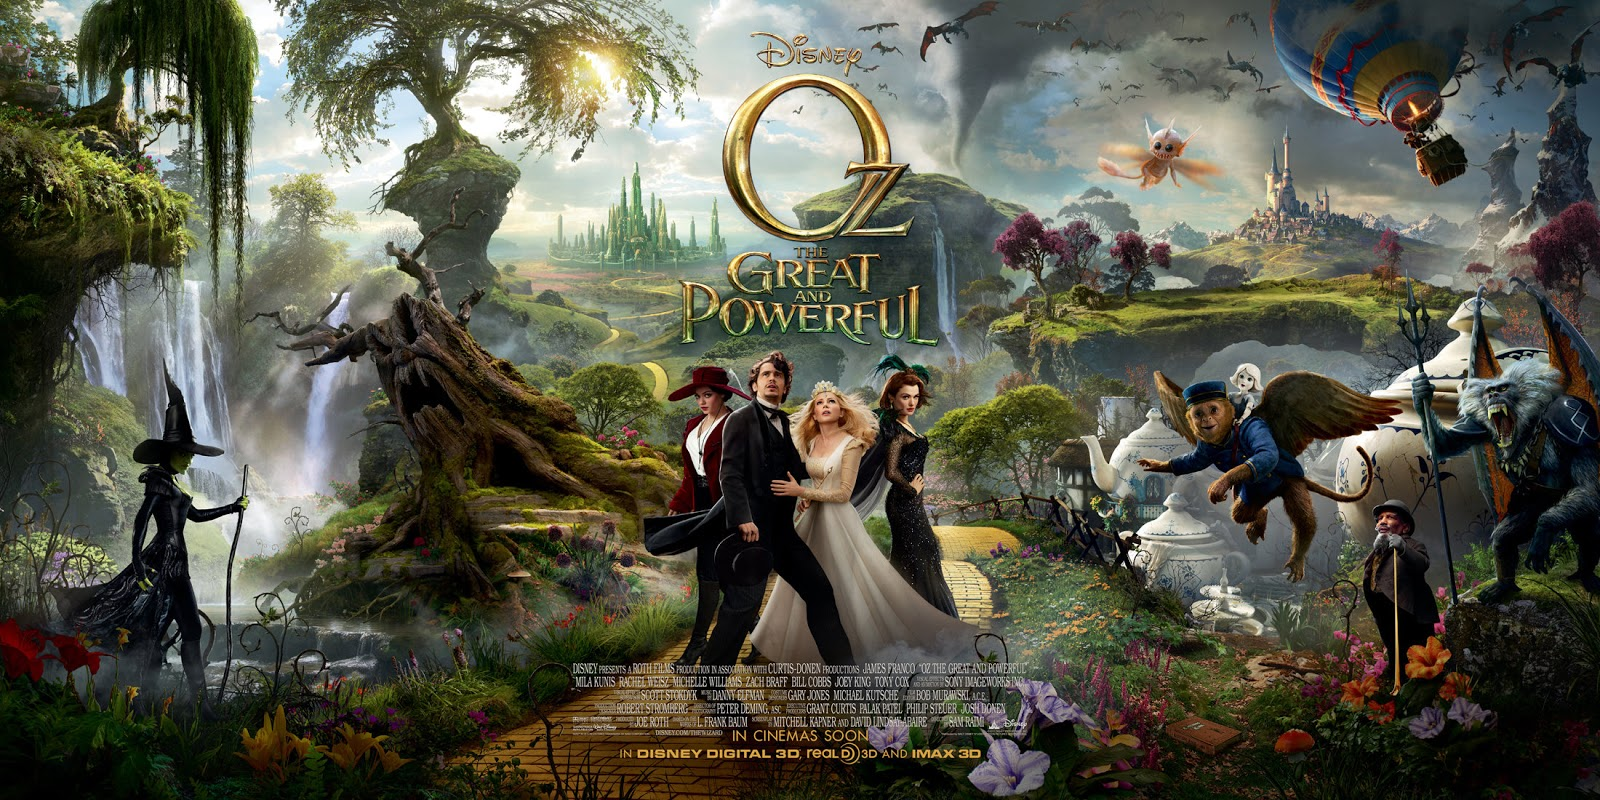 Movie poster showing the cast of Oz the Great and Powerful